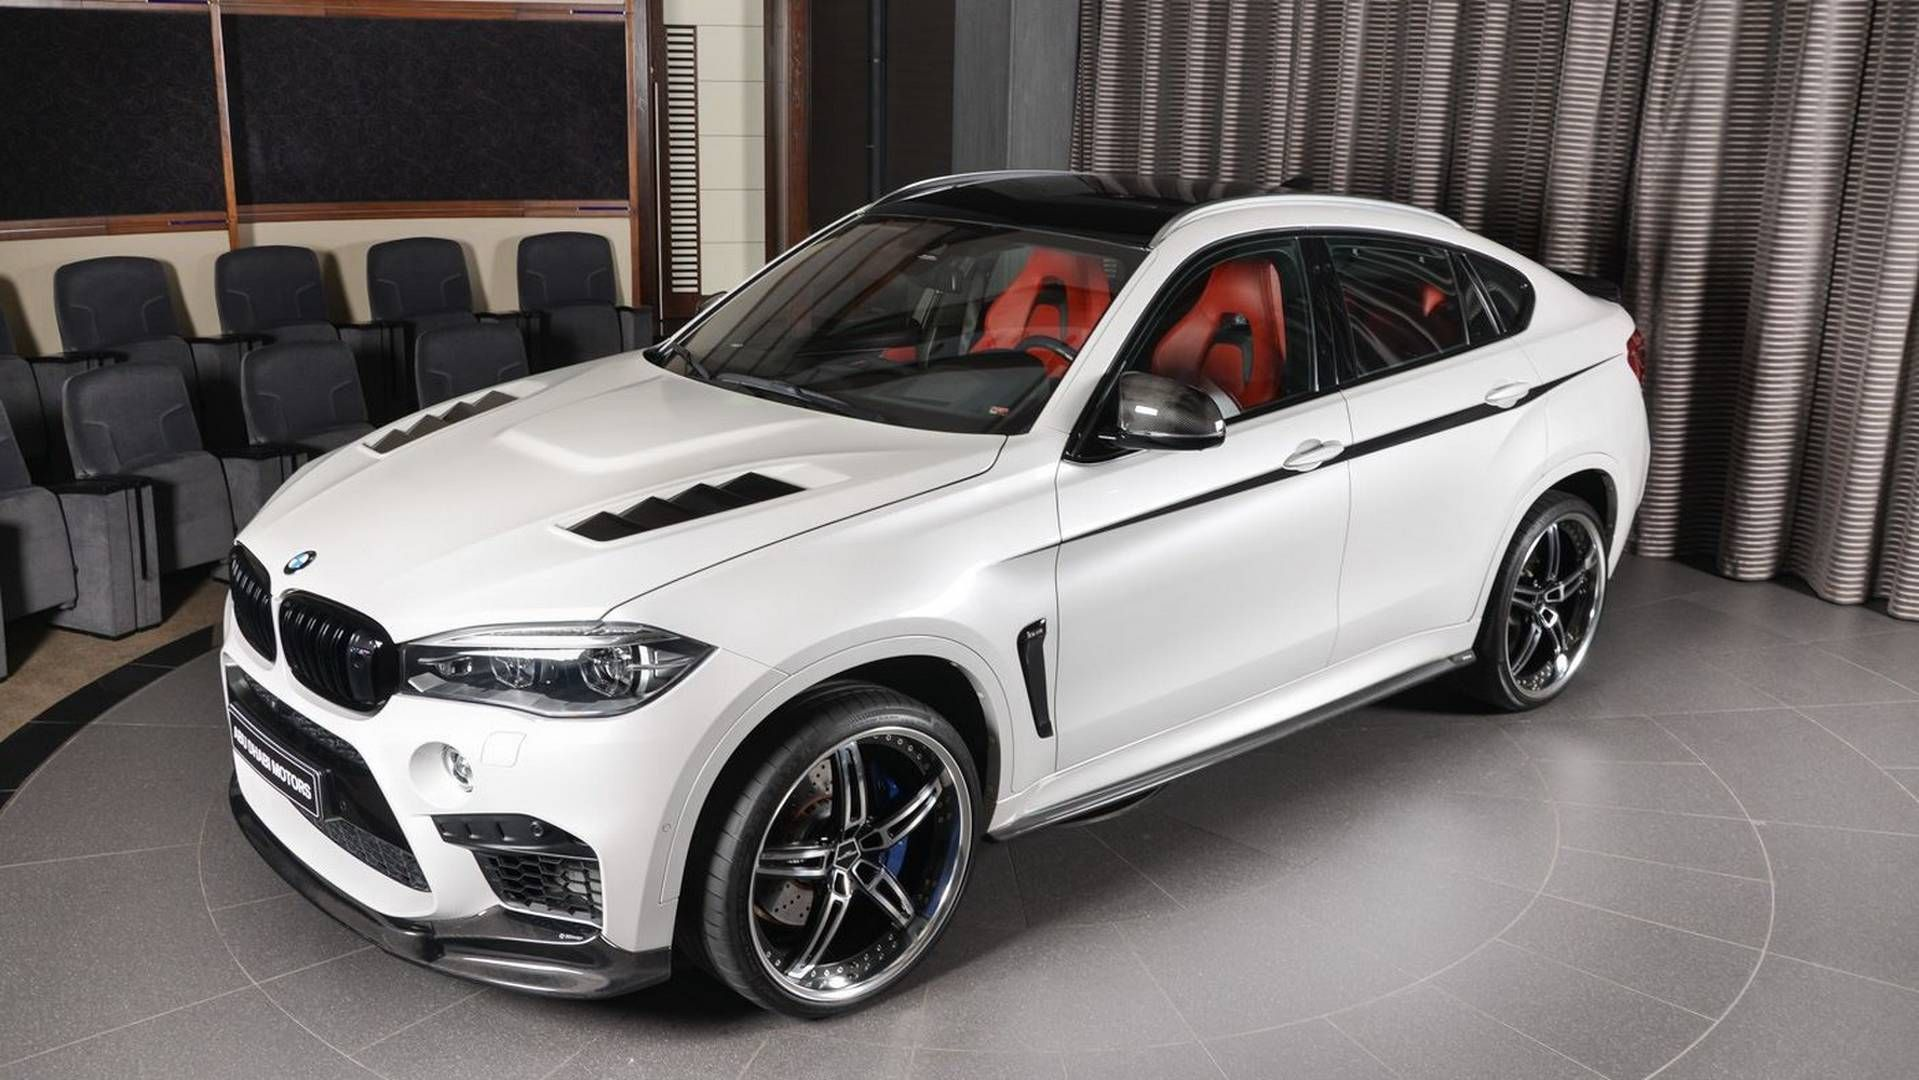 Bmw X6 M With 23 Inch Wheels Makes The Urus Look Restrained Bmw